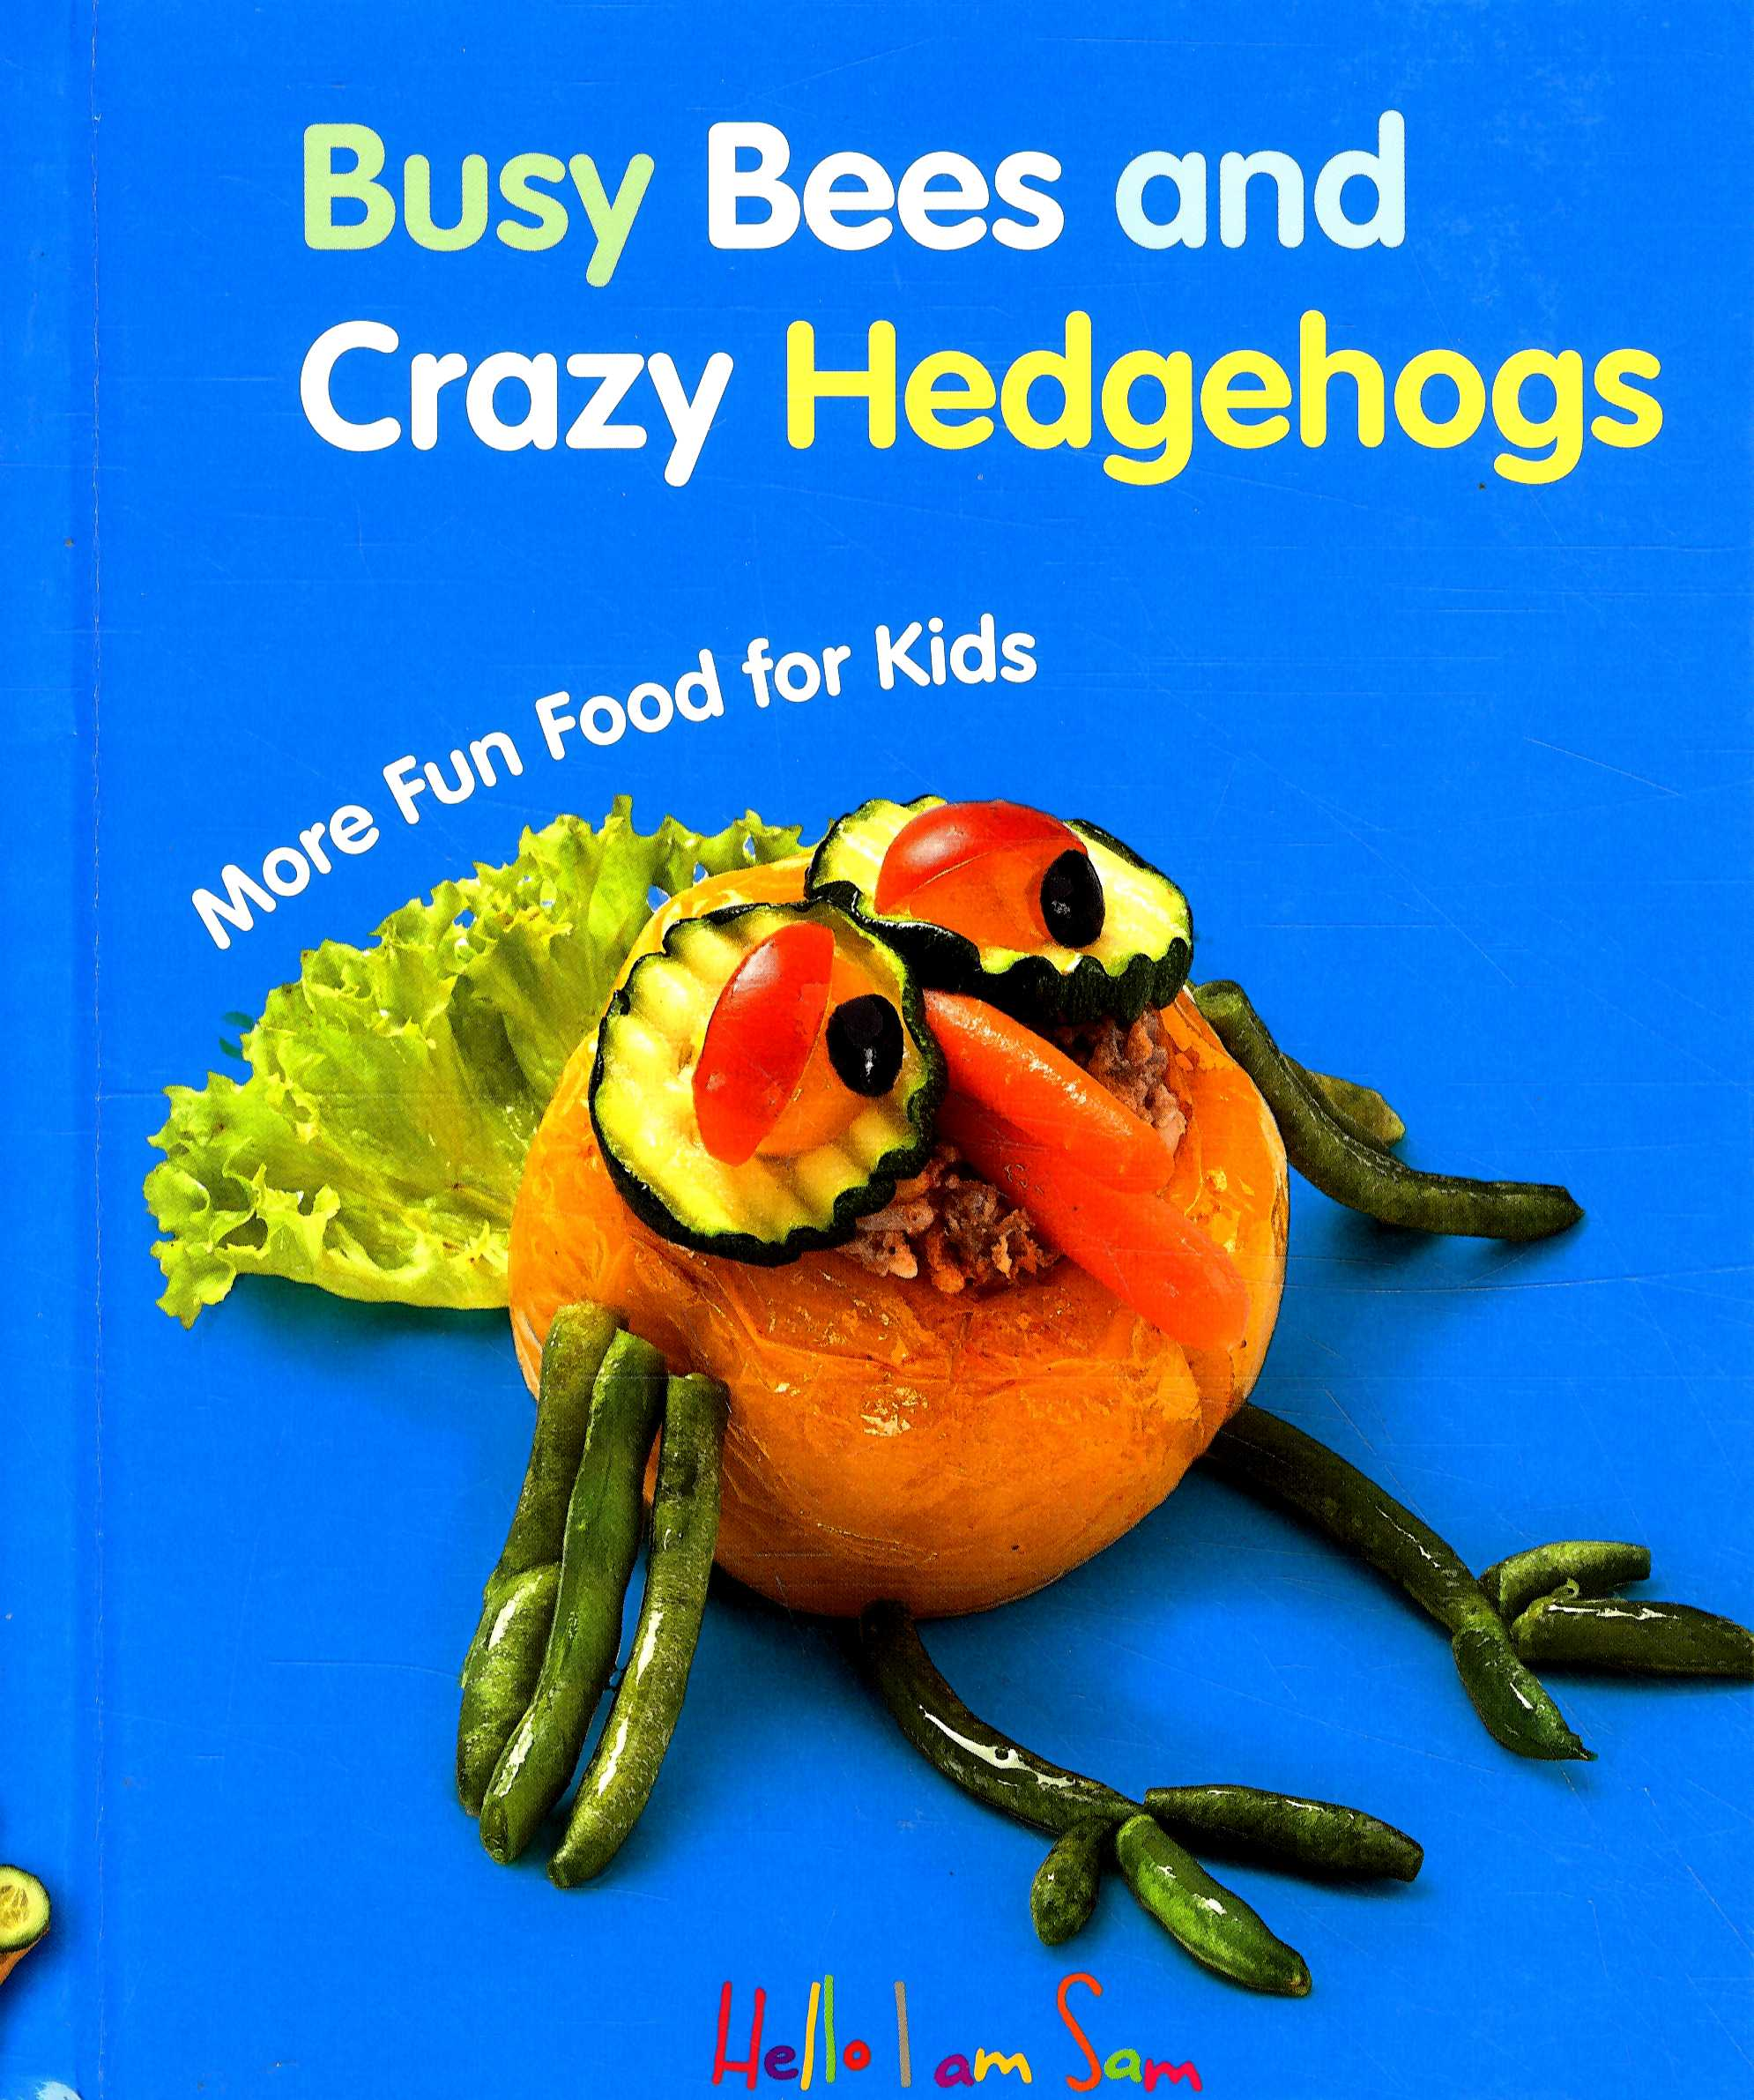 Busy Bees and Crayzy Hedgehogs